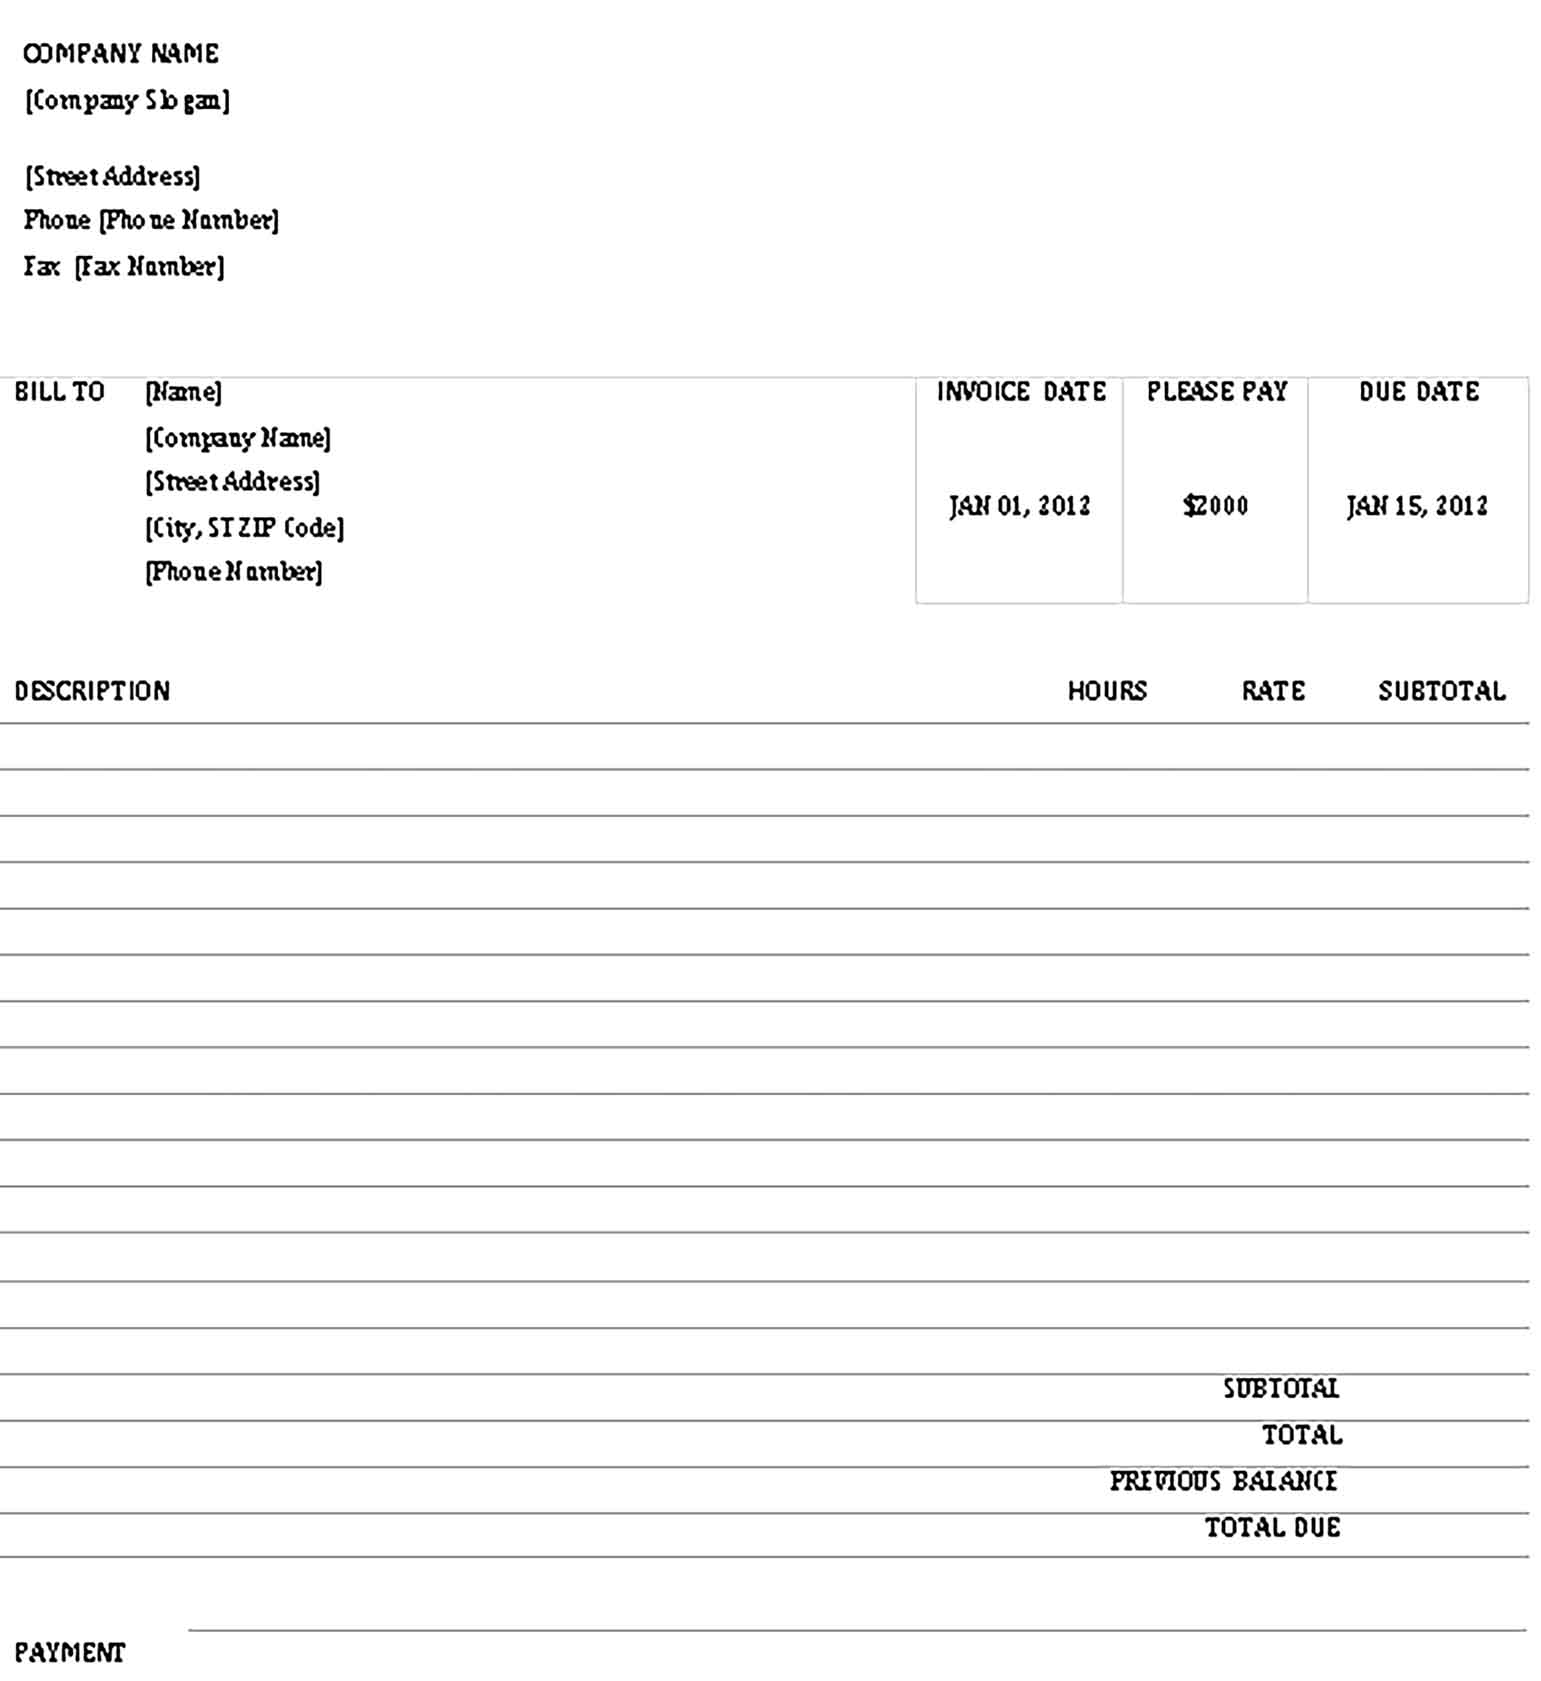 Sample Business Invoice Receipt Doc Templates